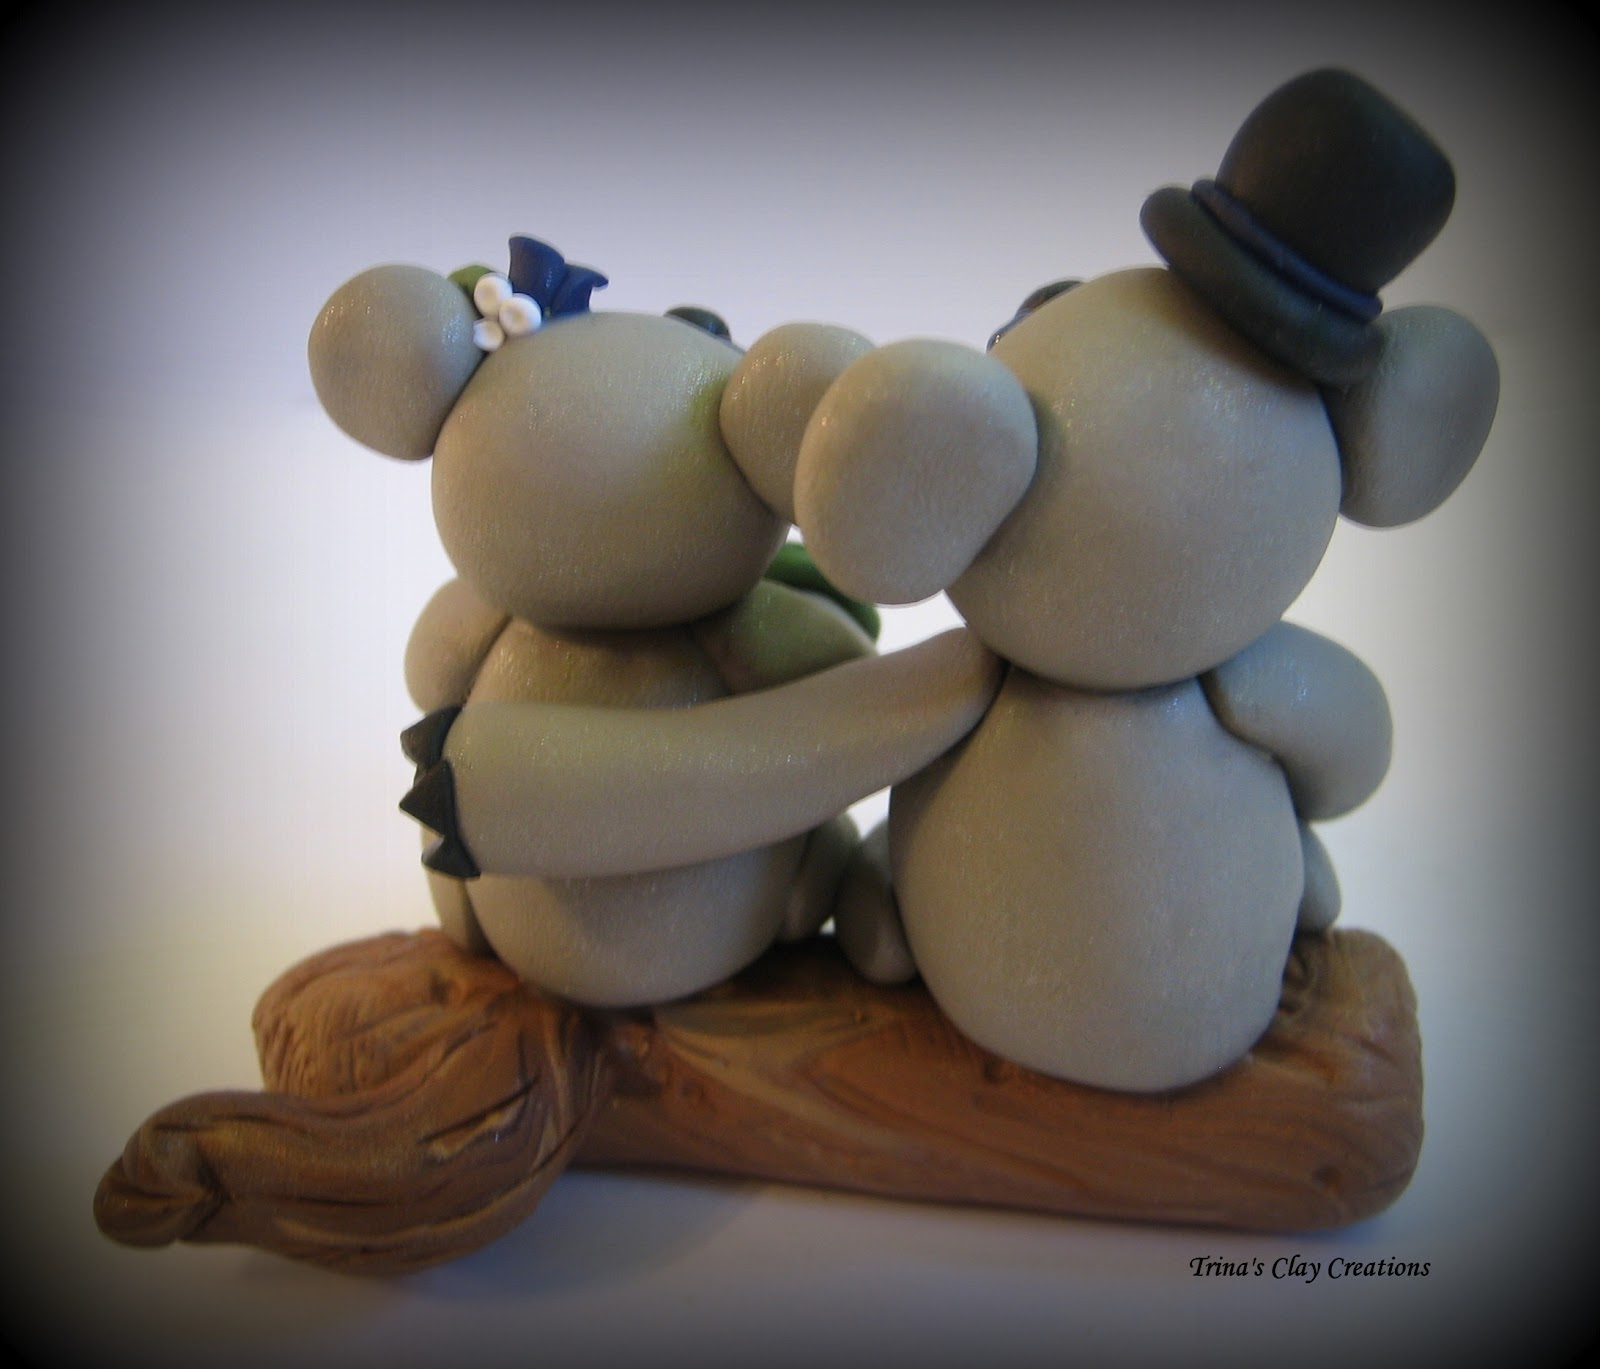 Trina's Trinketts: Koala and Panda Wedding Cake Toppers